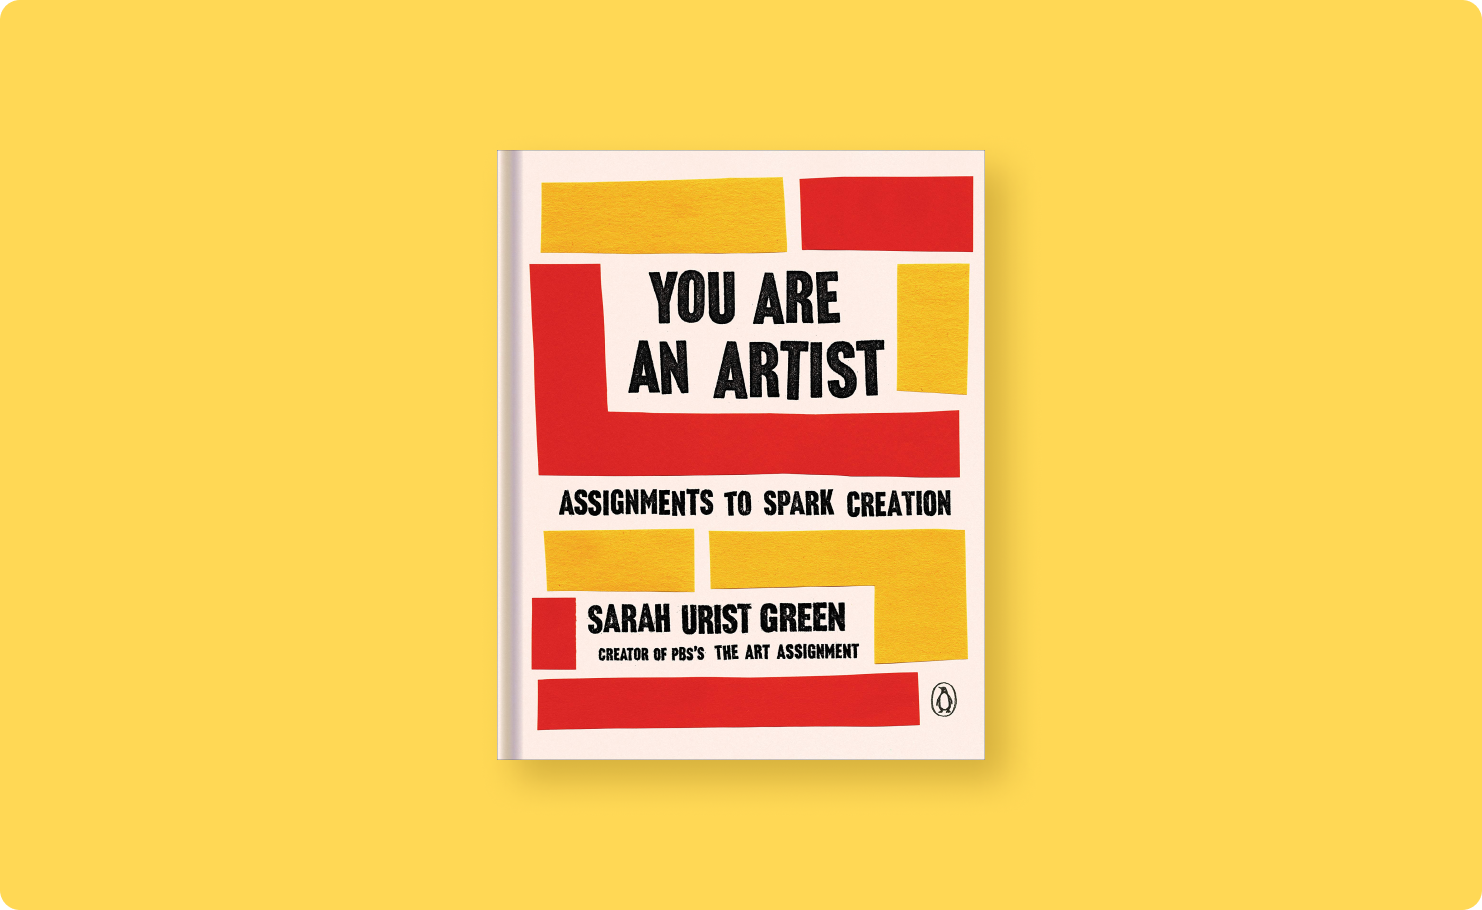 Cover image of the book: You Are an Artist